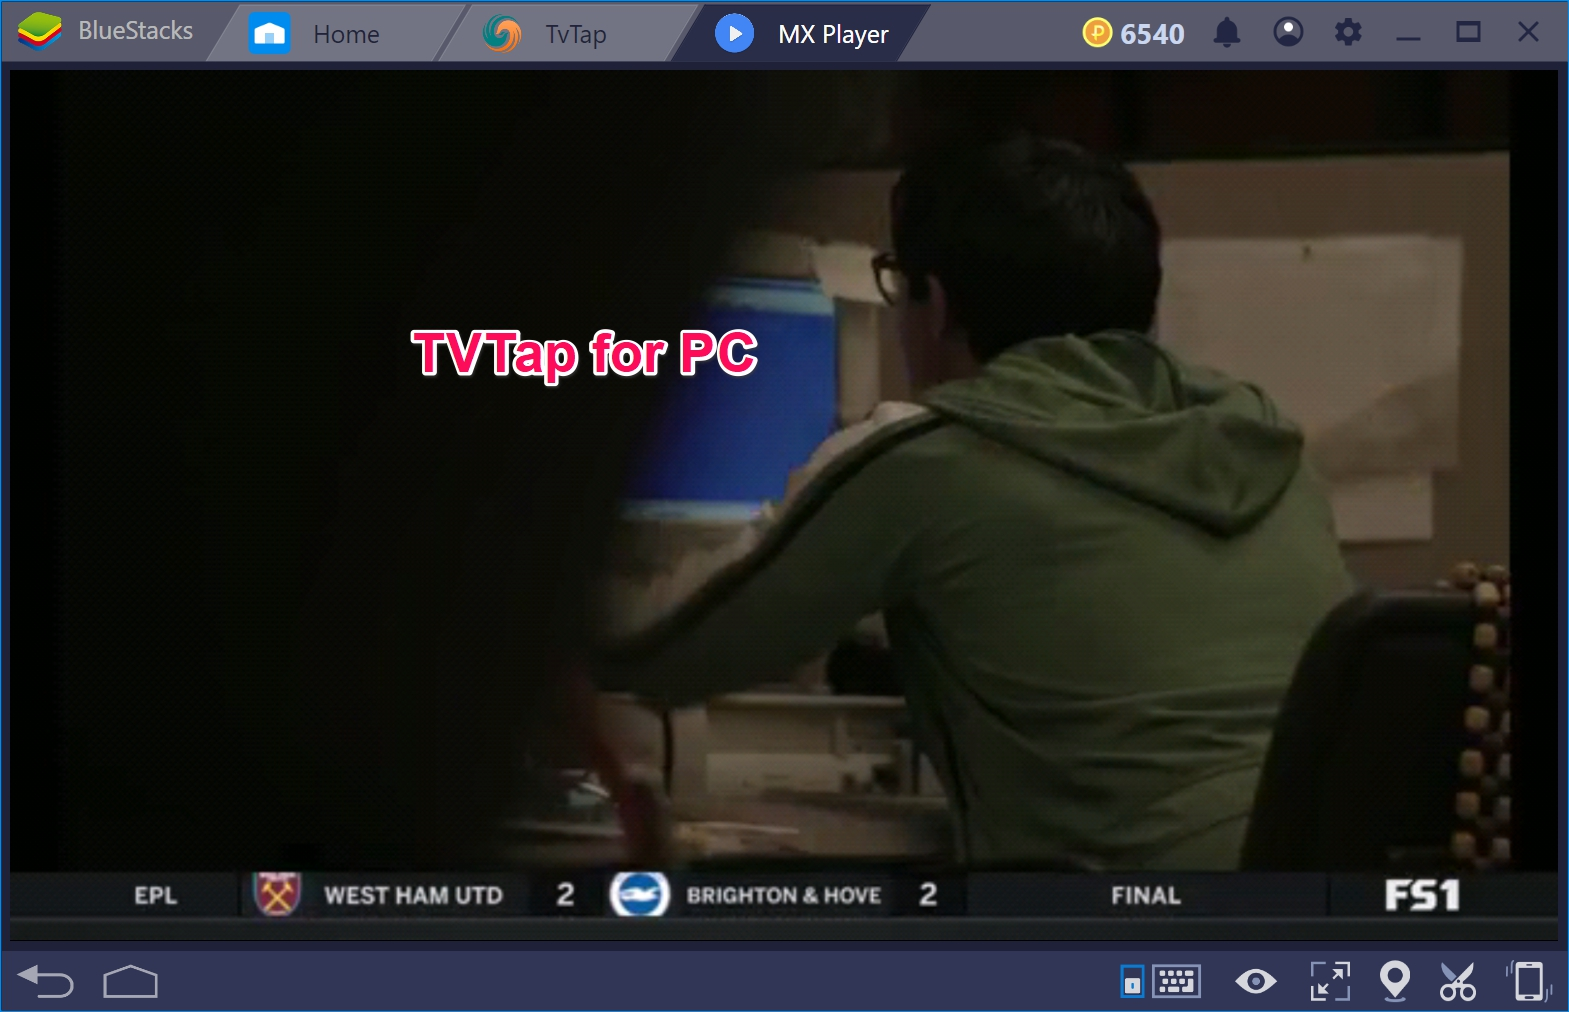 TvTap for PC Windows 10